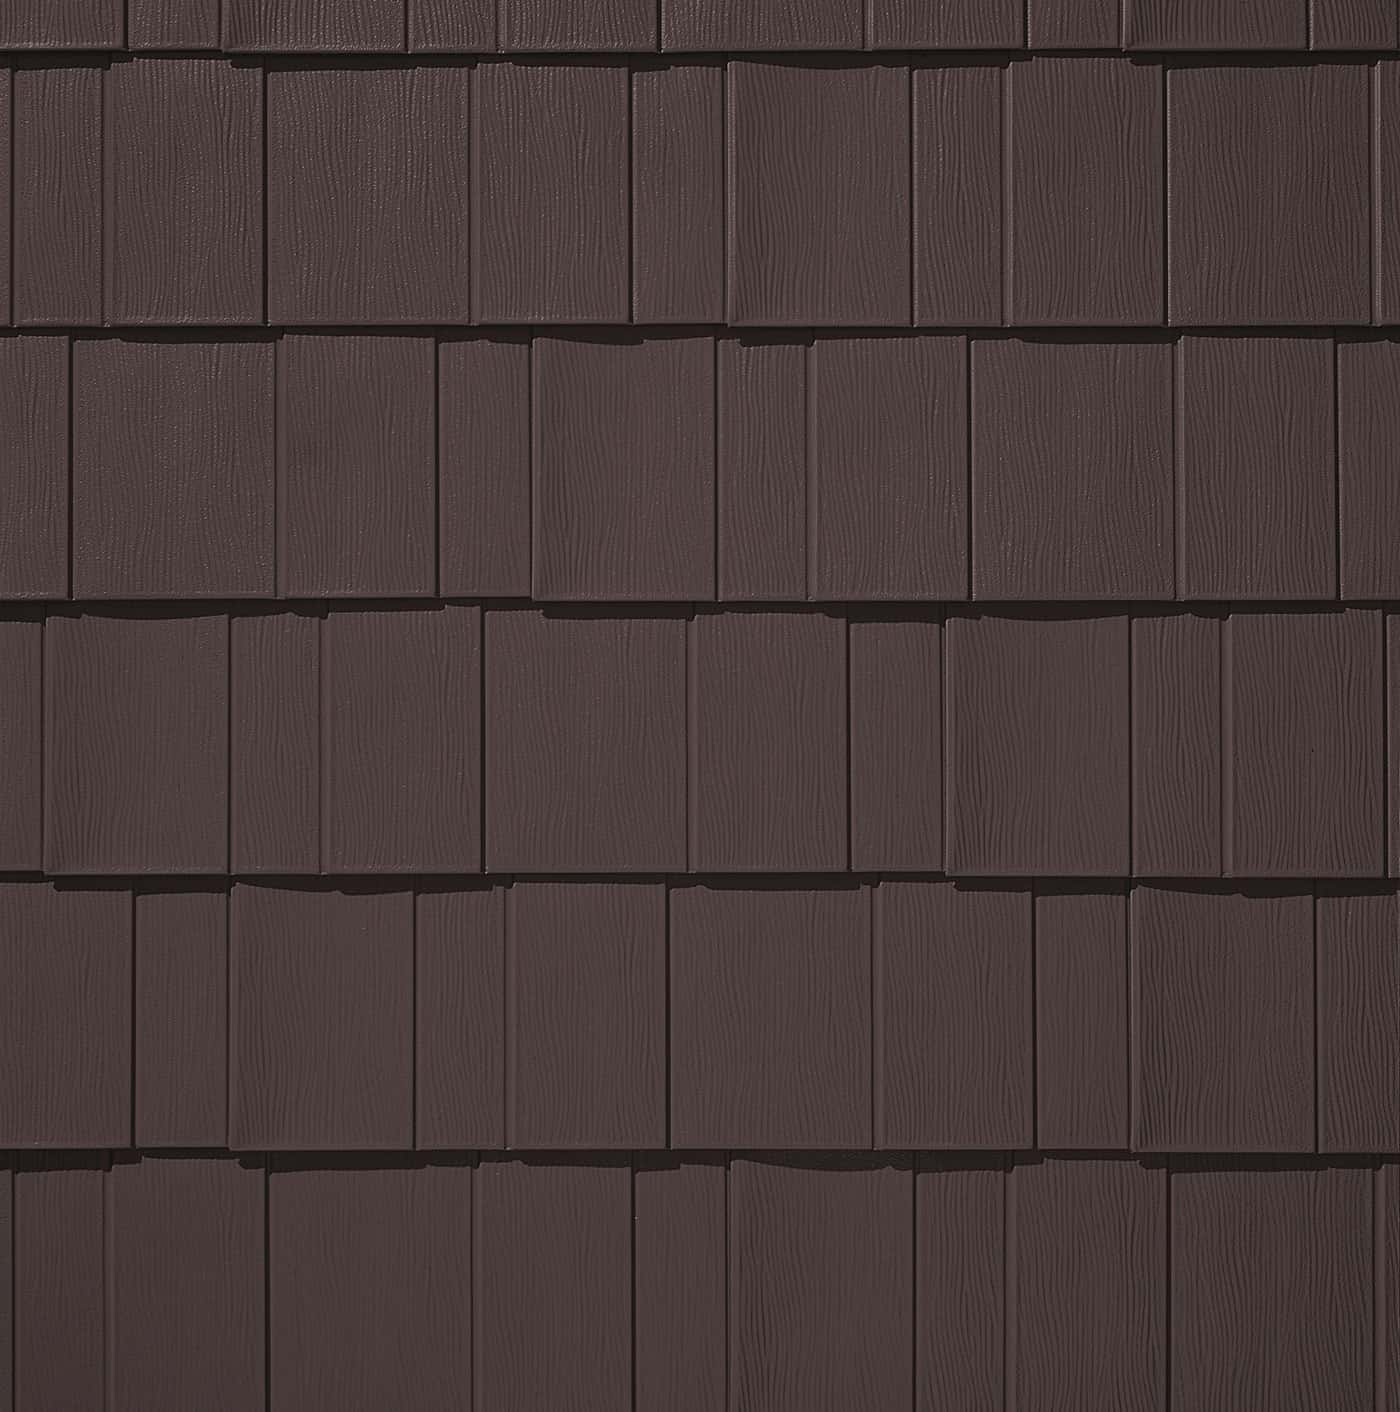 TAMKO Metalworks Astonwood Timber Brown Swatch